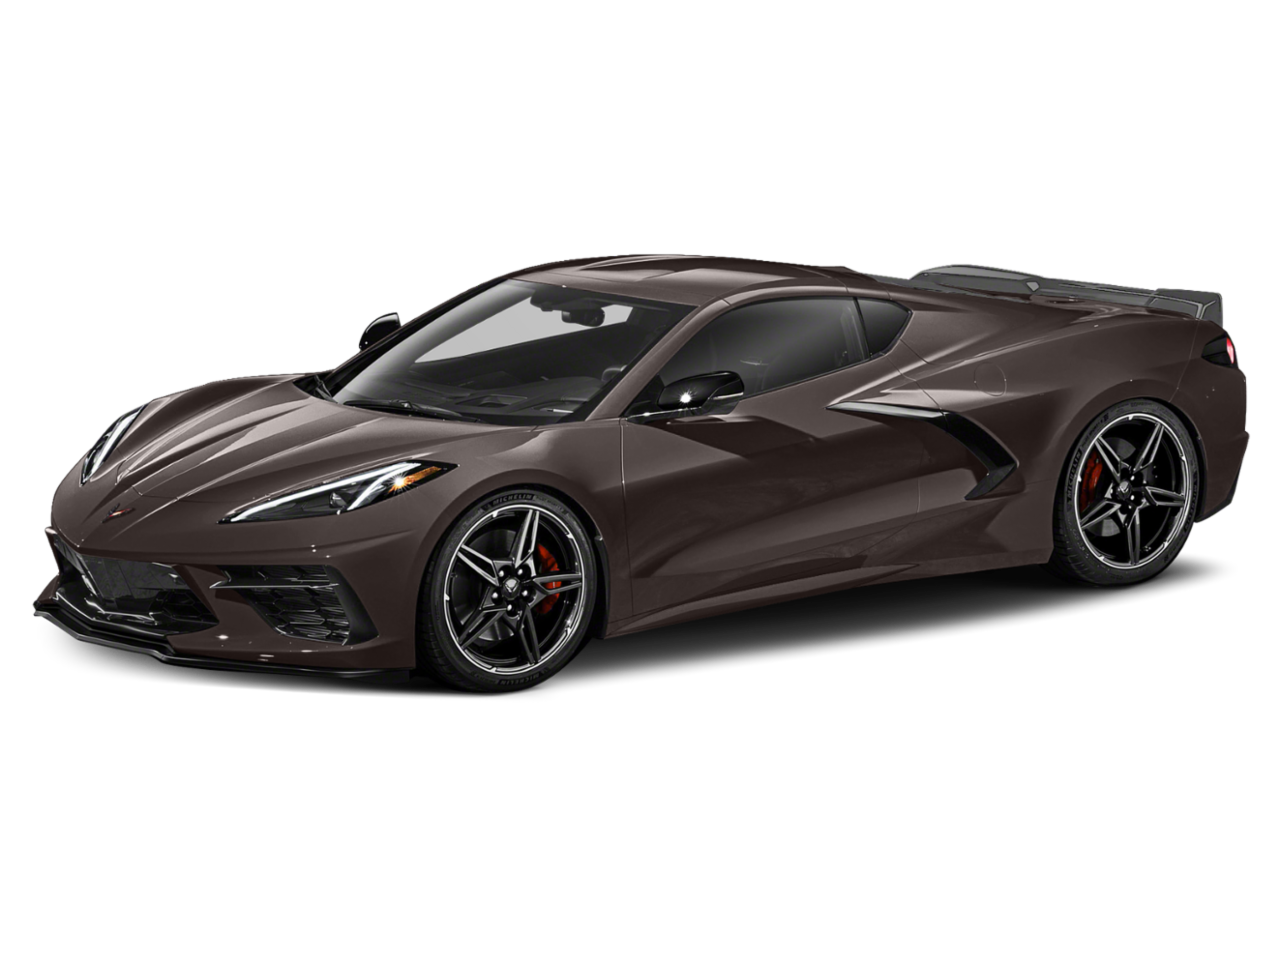 Chevrolet 2021 Corvette 1LT